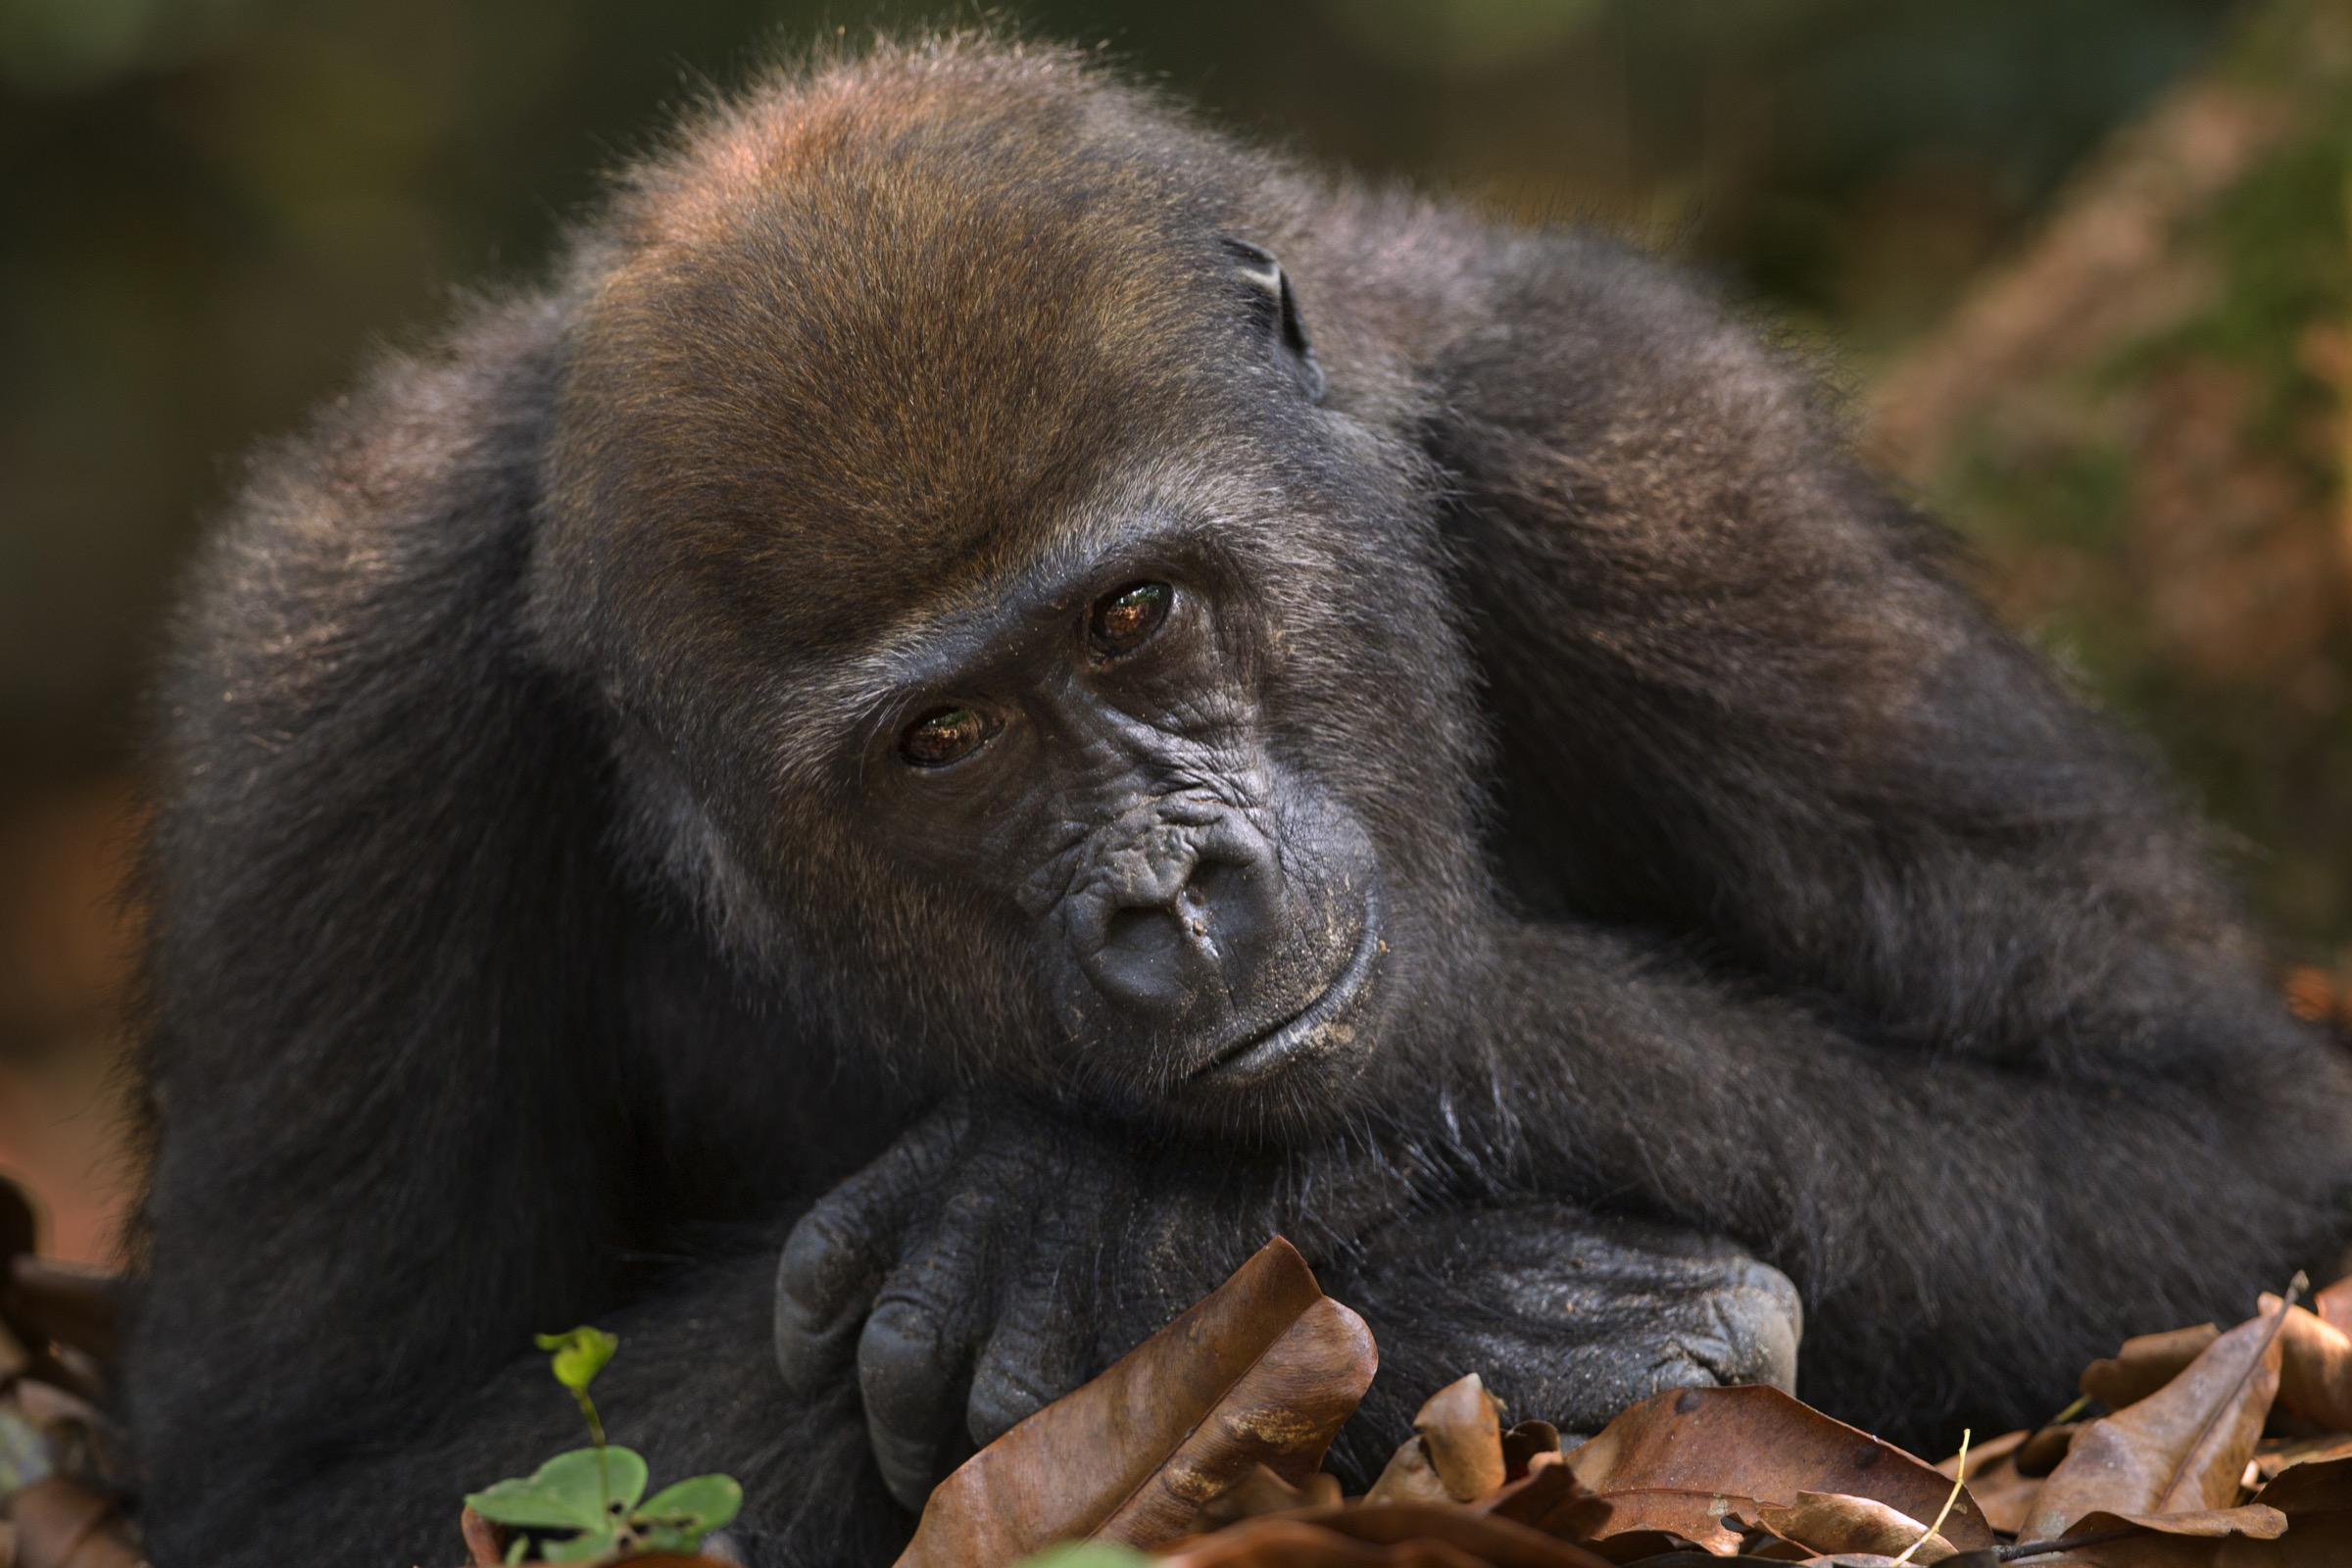 Mobangi, a five-year-old male, rests on his hands.